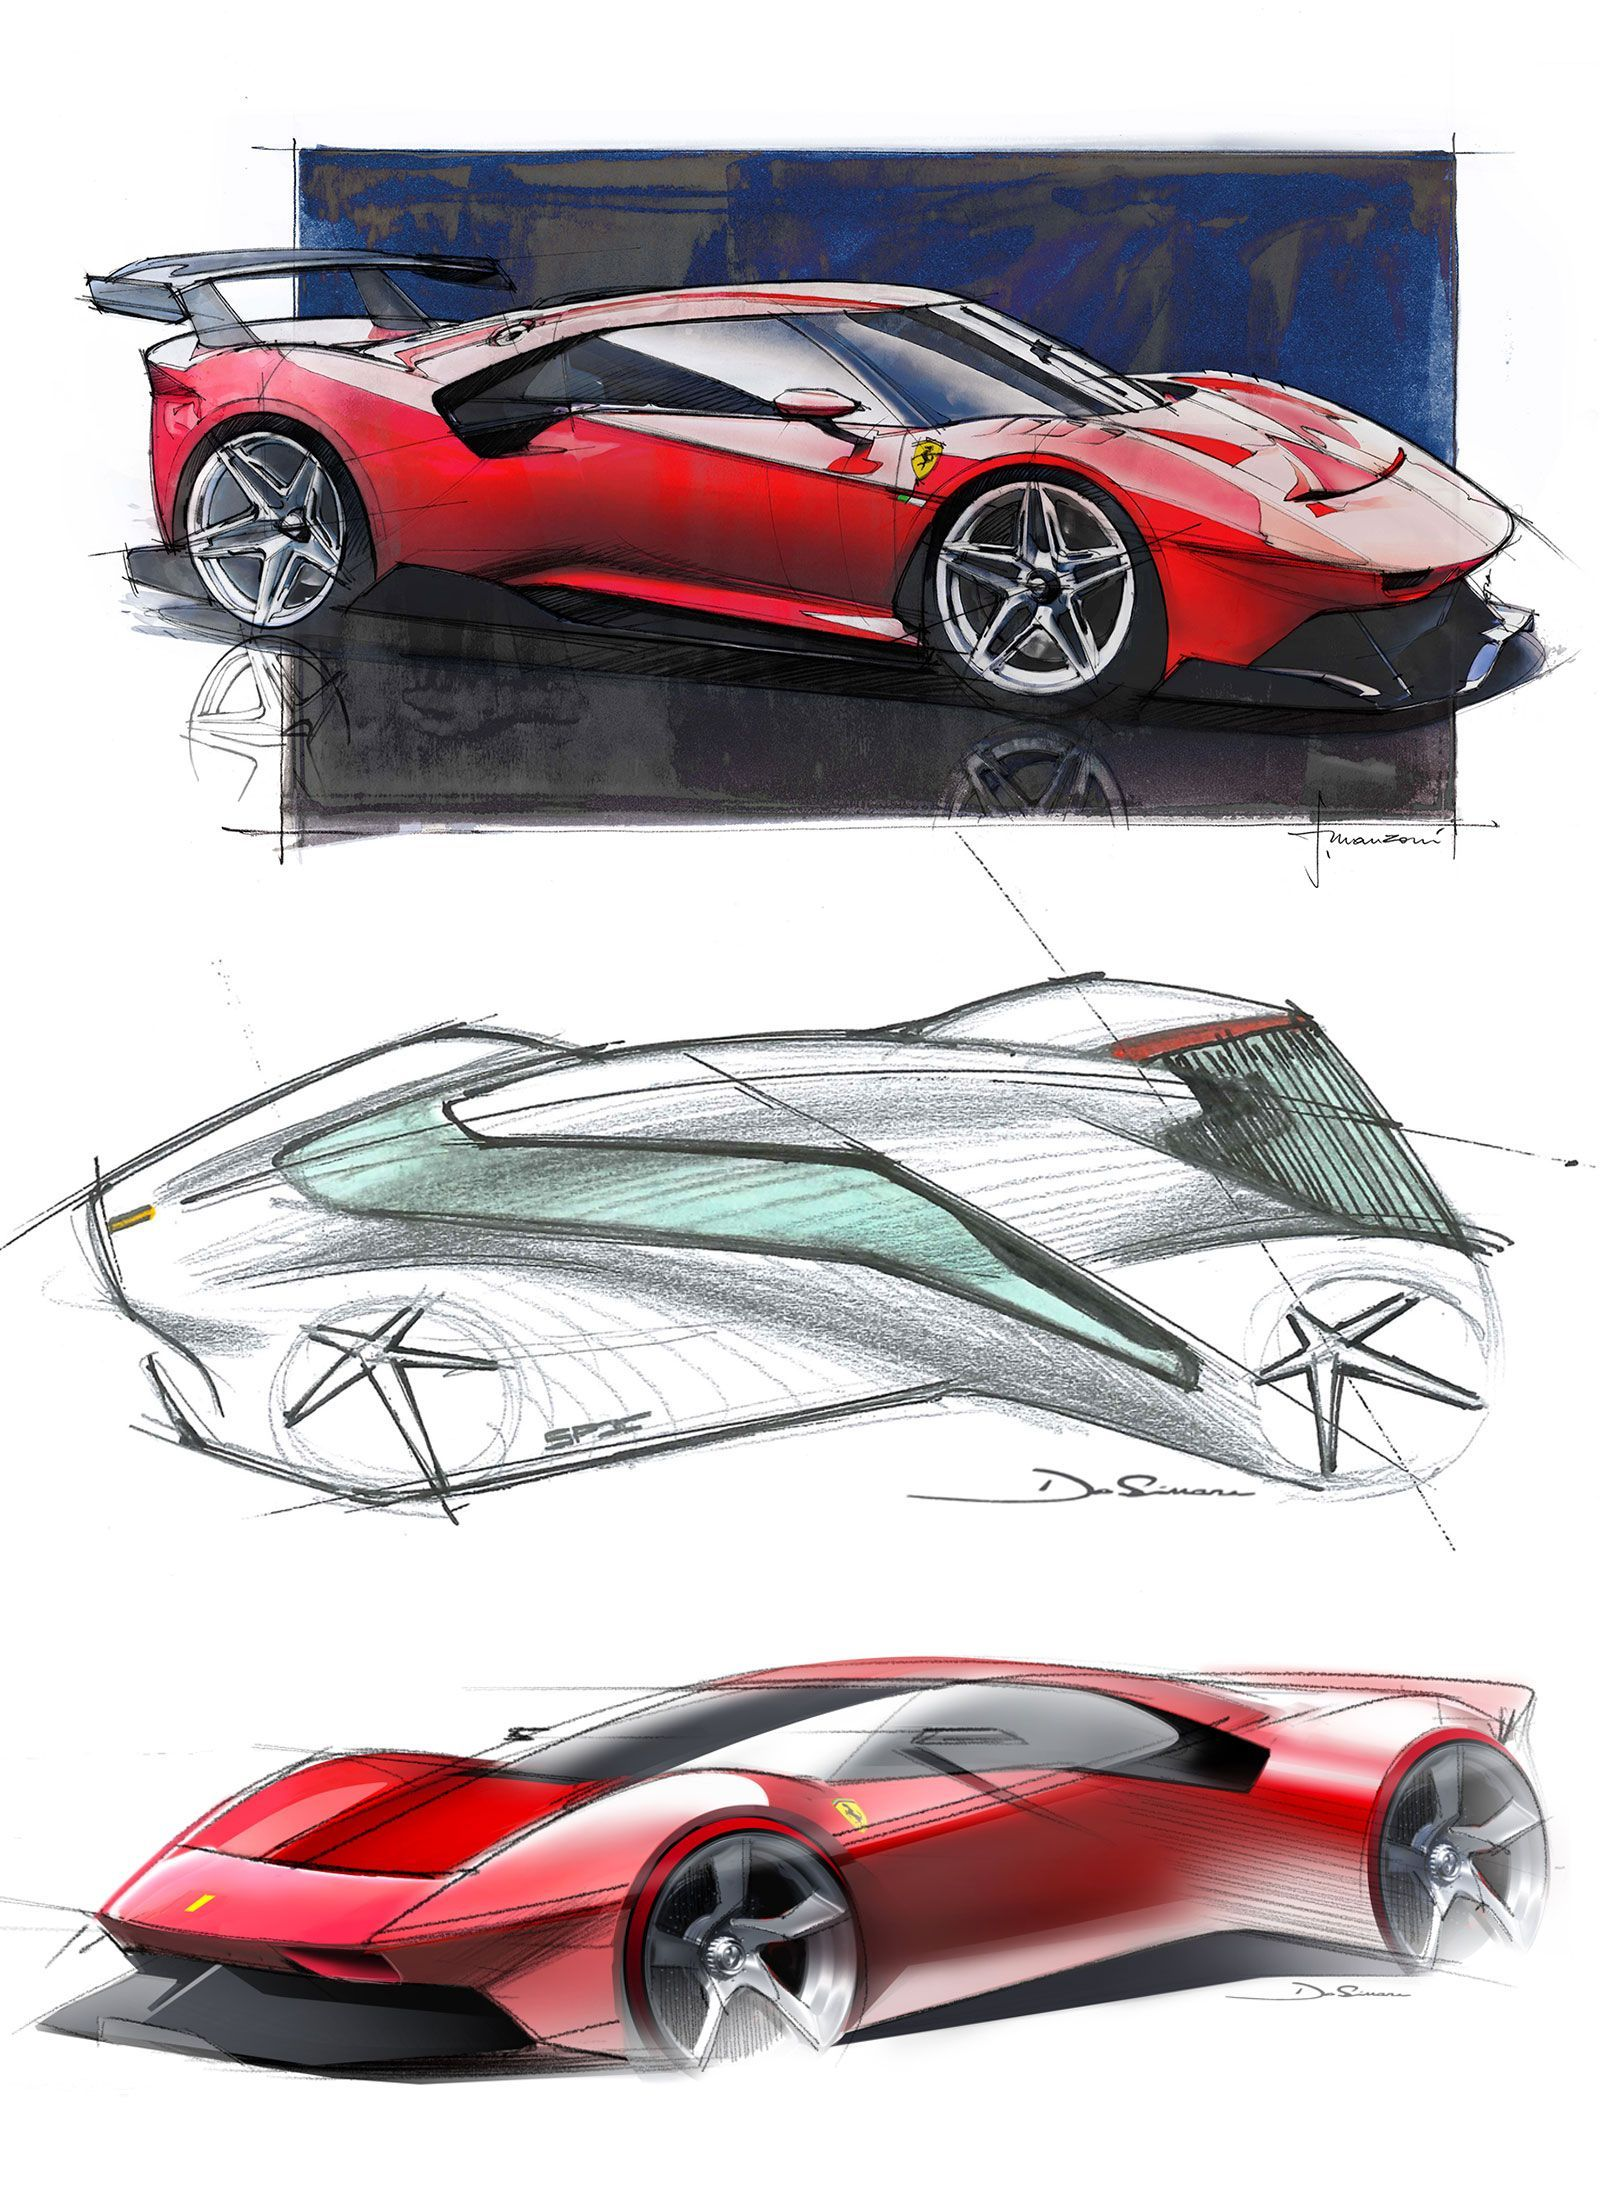 Design Futuristic Autodesign Automotive Car Automotivedesign Cargram Sketch Designsketch Carsket Concept Cars Concept Car Design Concept Cars Vintage